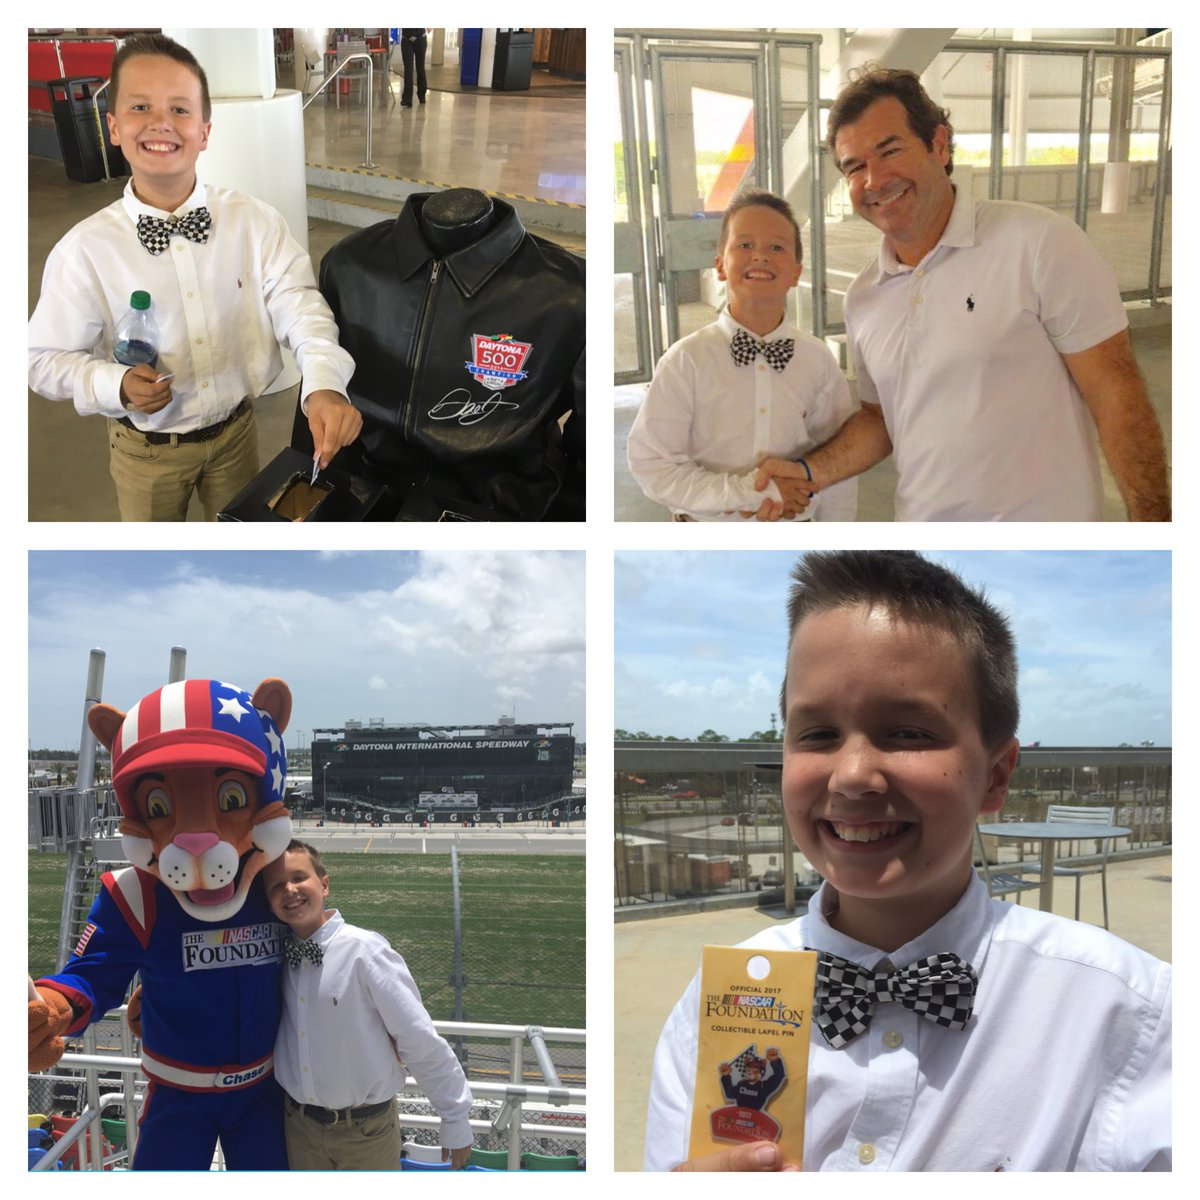 Fun lunch @DISupdates for #NASCARDay. Met Mr. Chitwood &amp; Chase the @NASCAR_FDN mascot. Now need to get lucky to win the @DaleJr ️ jacket!<br>http://pic.twitter.com/u5whr098Bn &ndash; à Daytona International Speedway